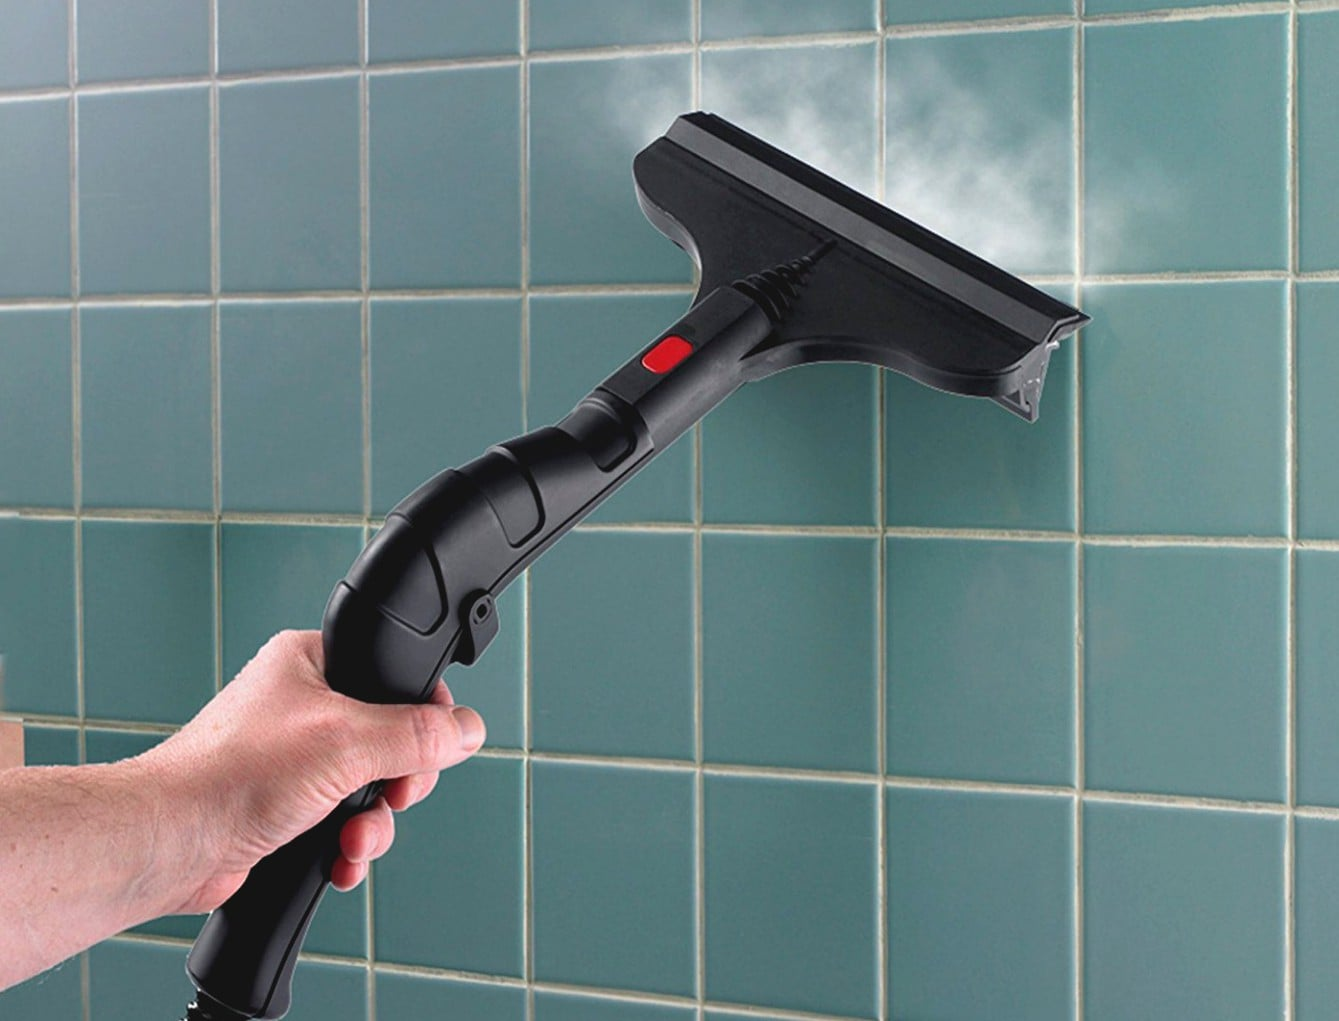 5 best steam cleaner for tile floors and grout review 2018 buying 5 best steam cleaner for tile floors and grout review 2018 buying guide pickthevacuum dailygadgetfo Choice Image